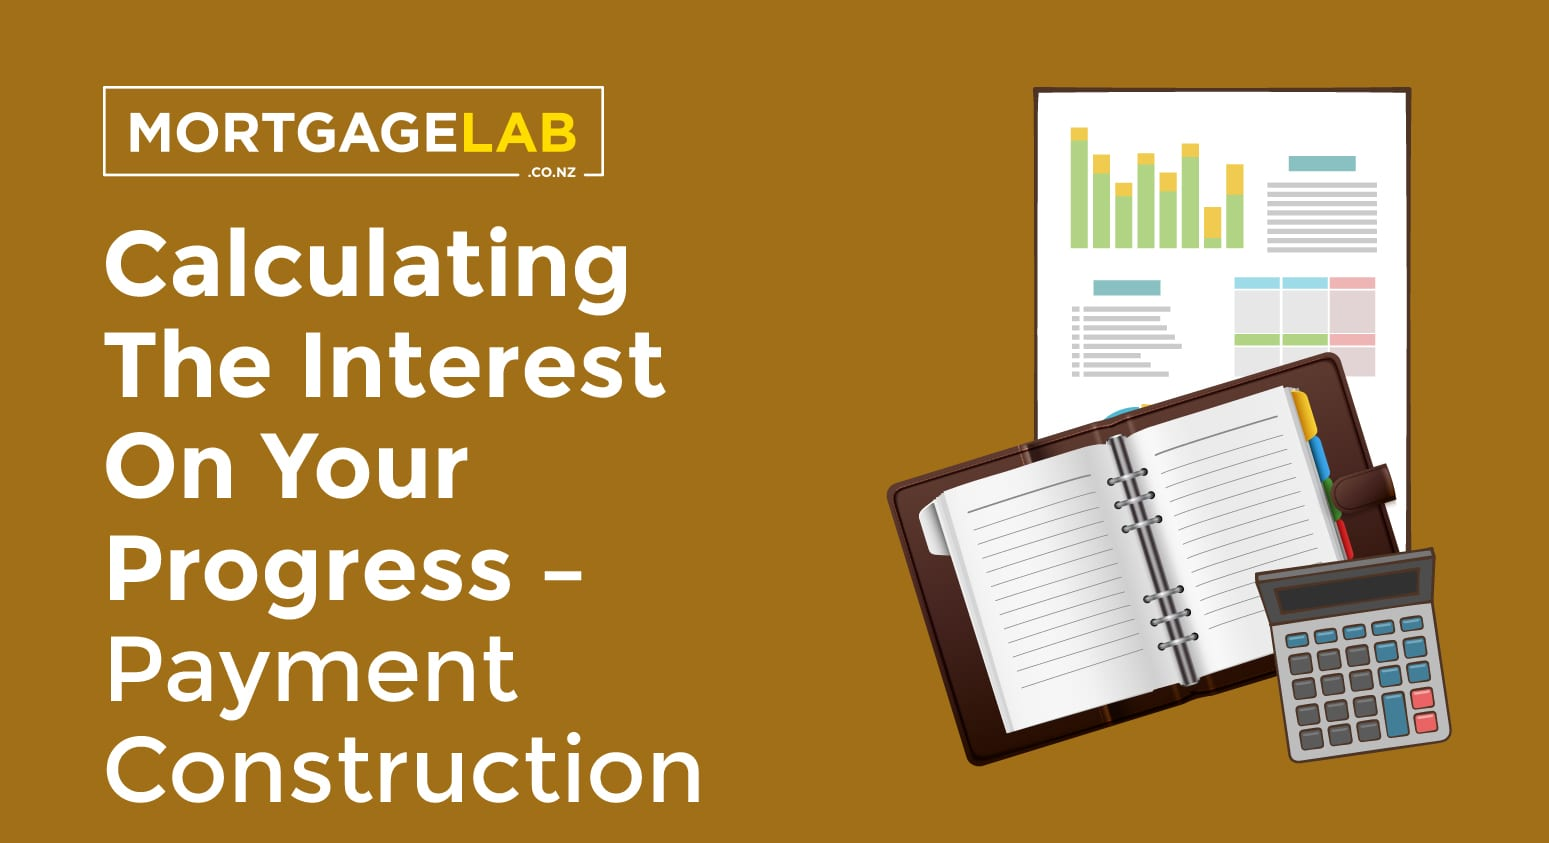 Calculating The Interest On Your Progress-Payment Construction